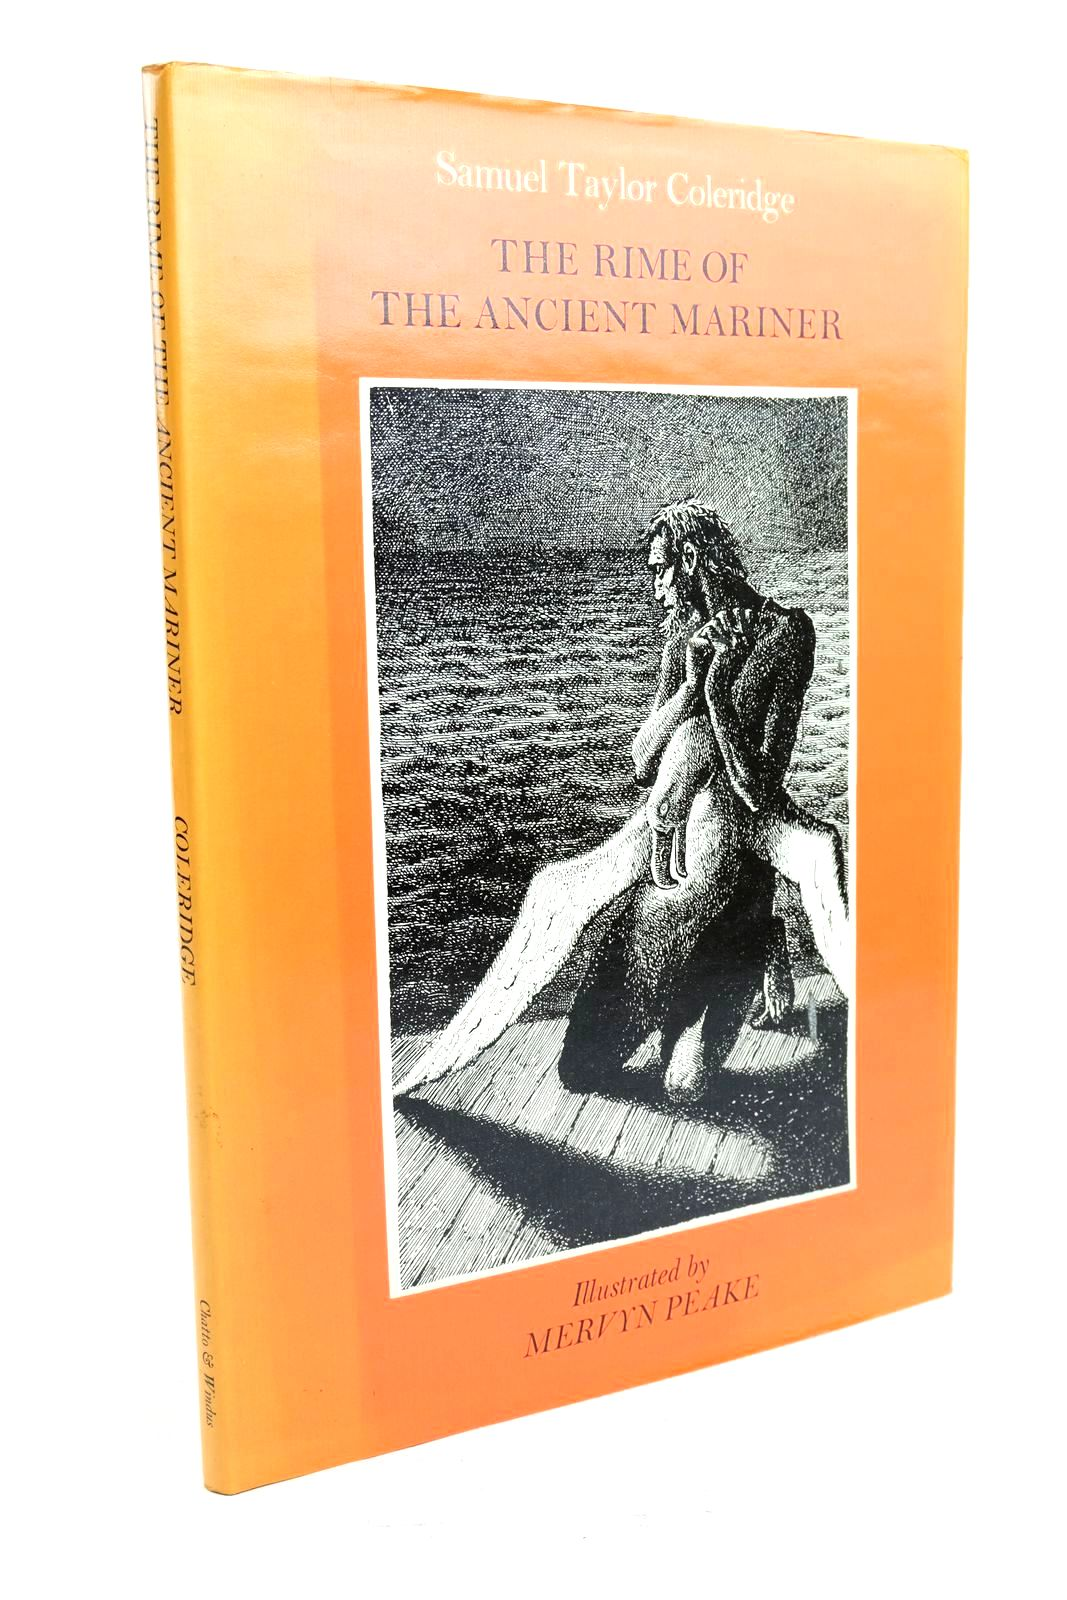 Photo of THE RIME OF THE ANCIENT MARINER- Stock Number: 1321111